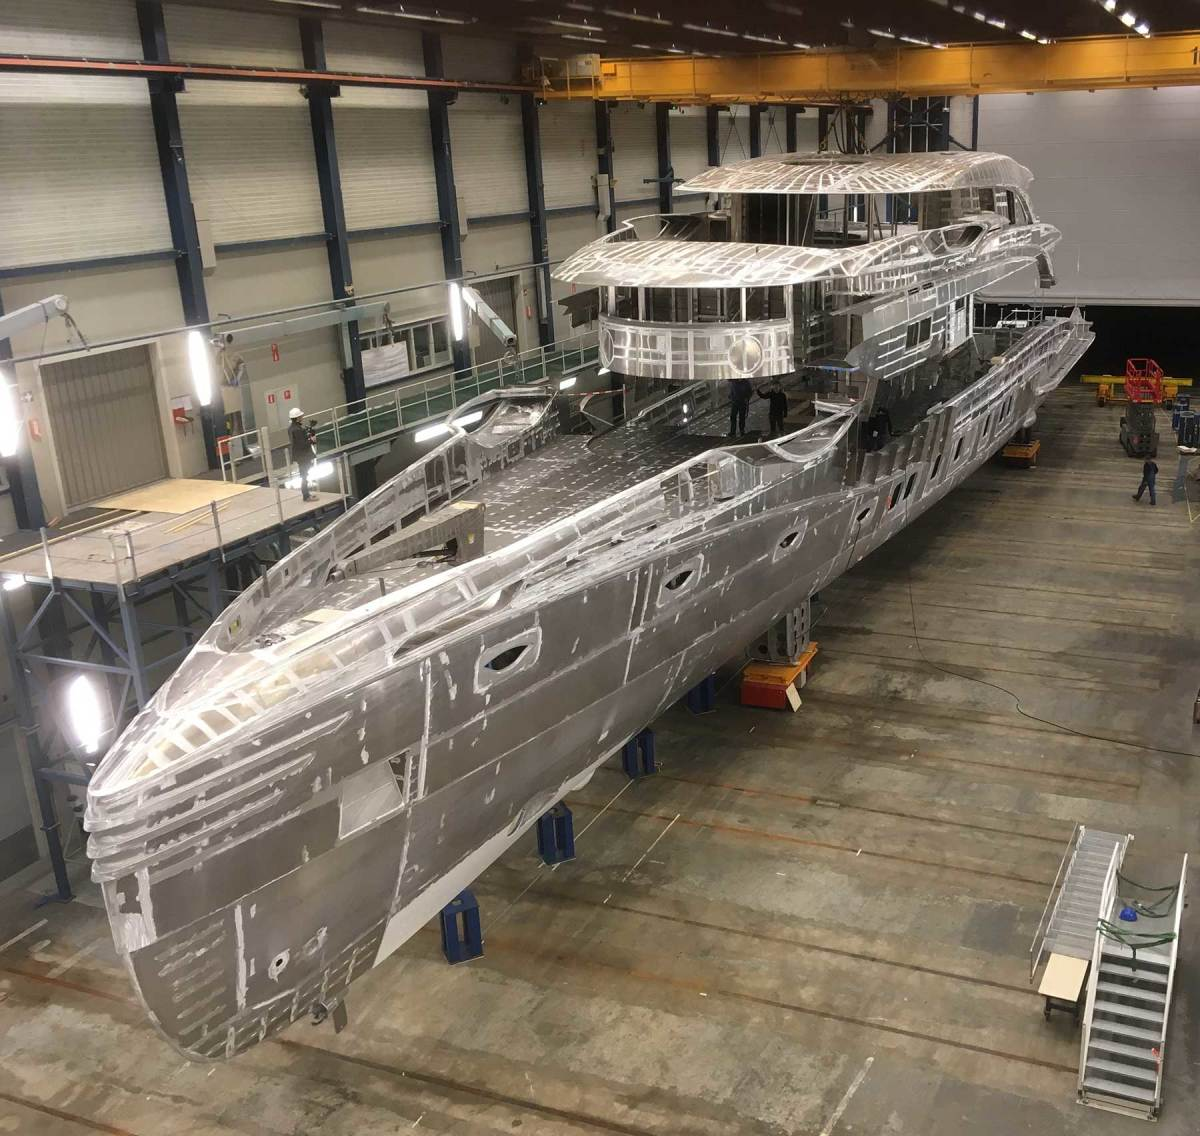 RoyalHuisman403_Project_PHI_Himage00011c